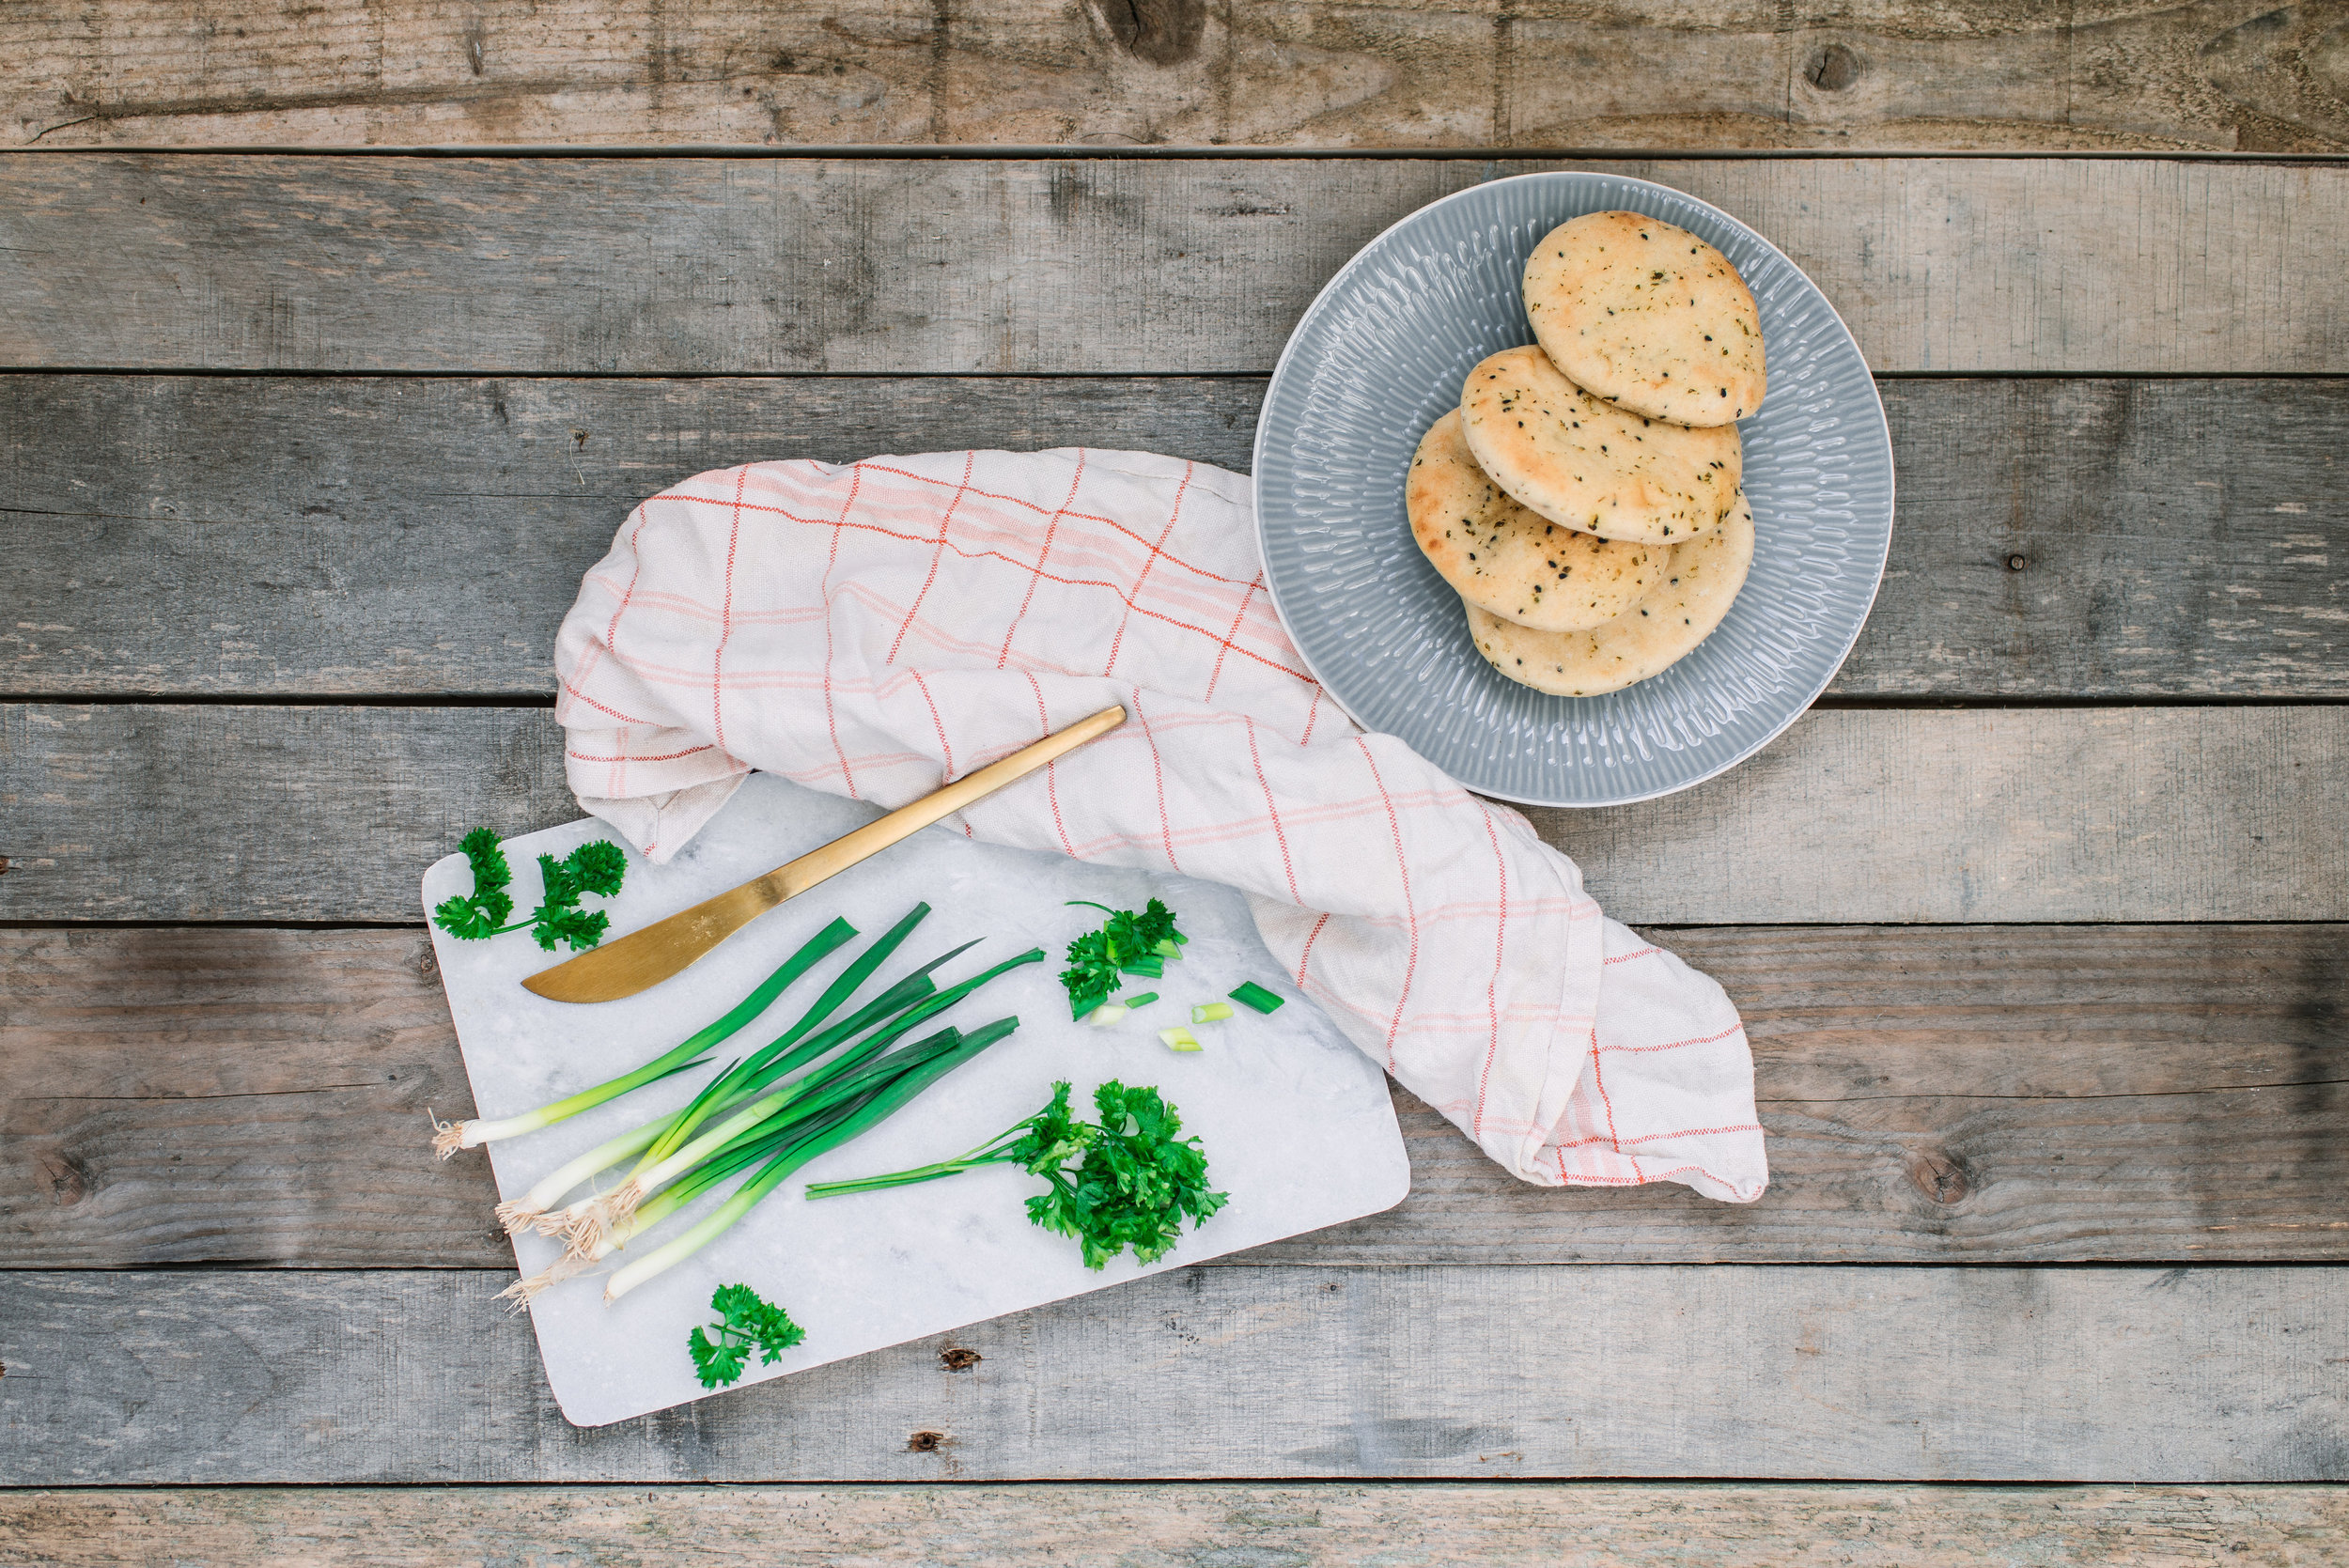 Paper_and_Moon_Louise_Dockery_food_recipe_flatbread_naan_bread_spring_onions_marble_cutting_board_lunch.jpg